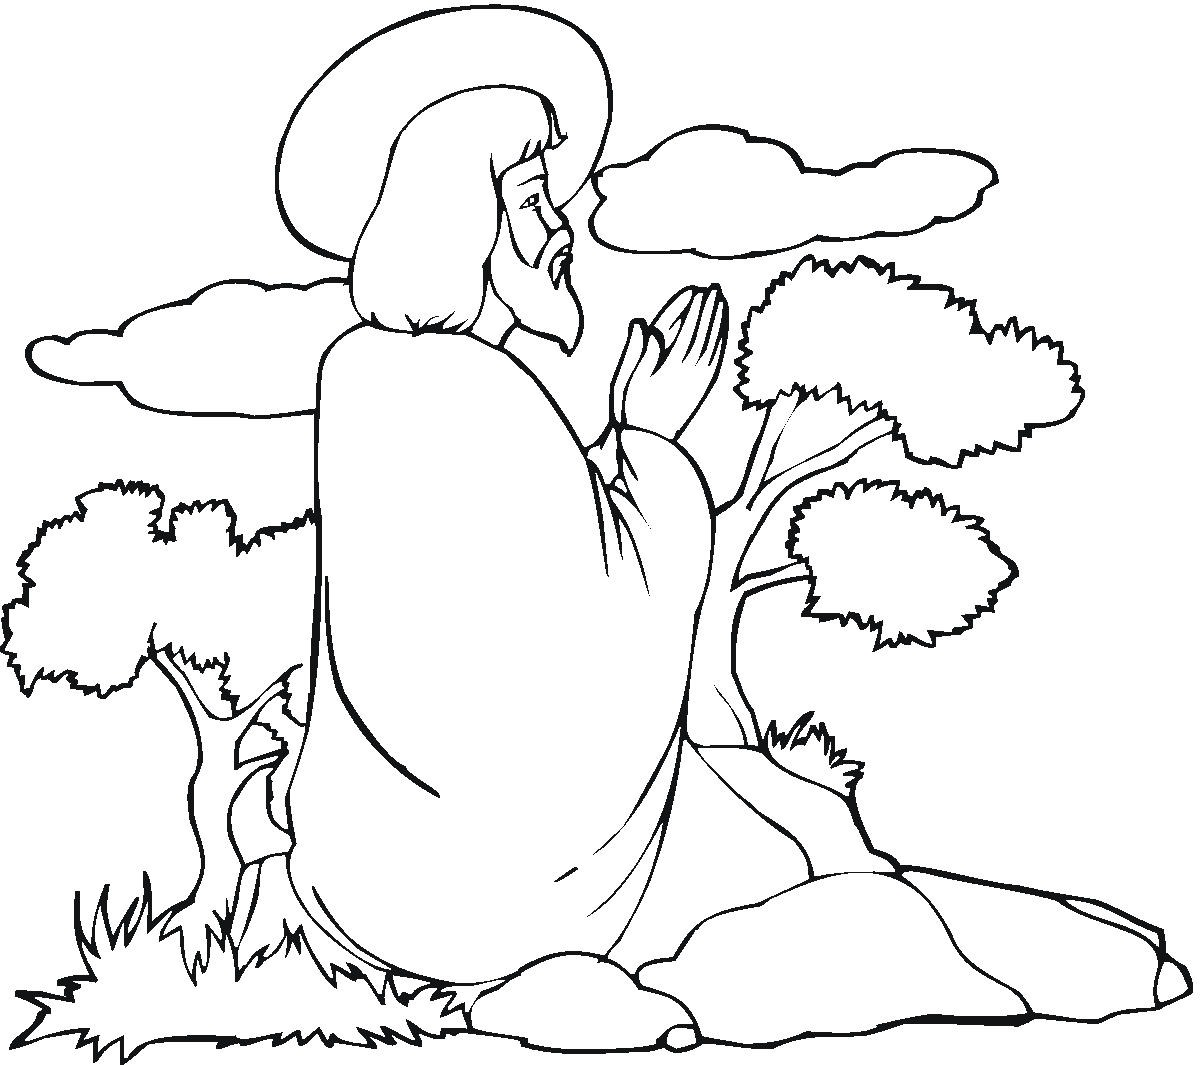 gateway to hope coloring pages - photo#19